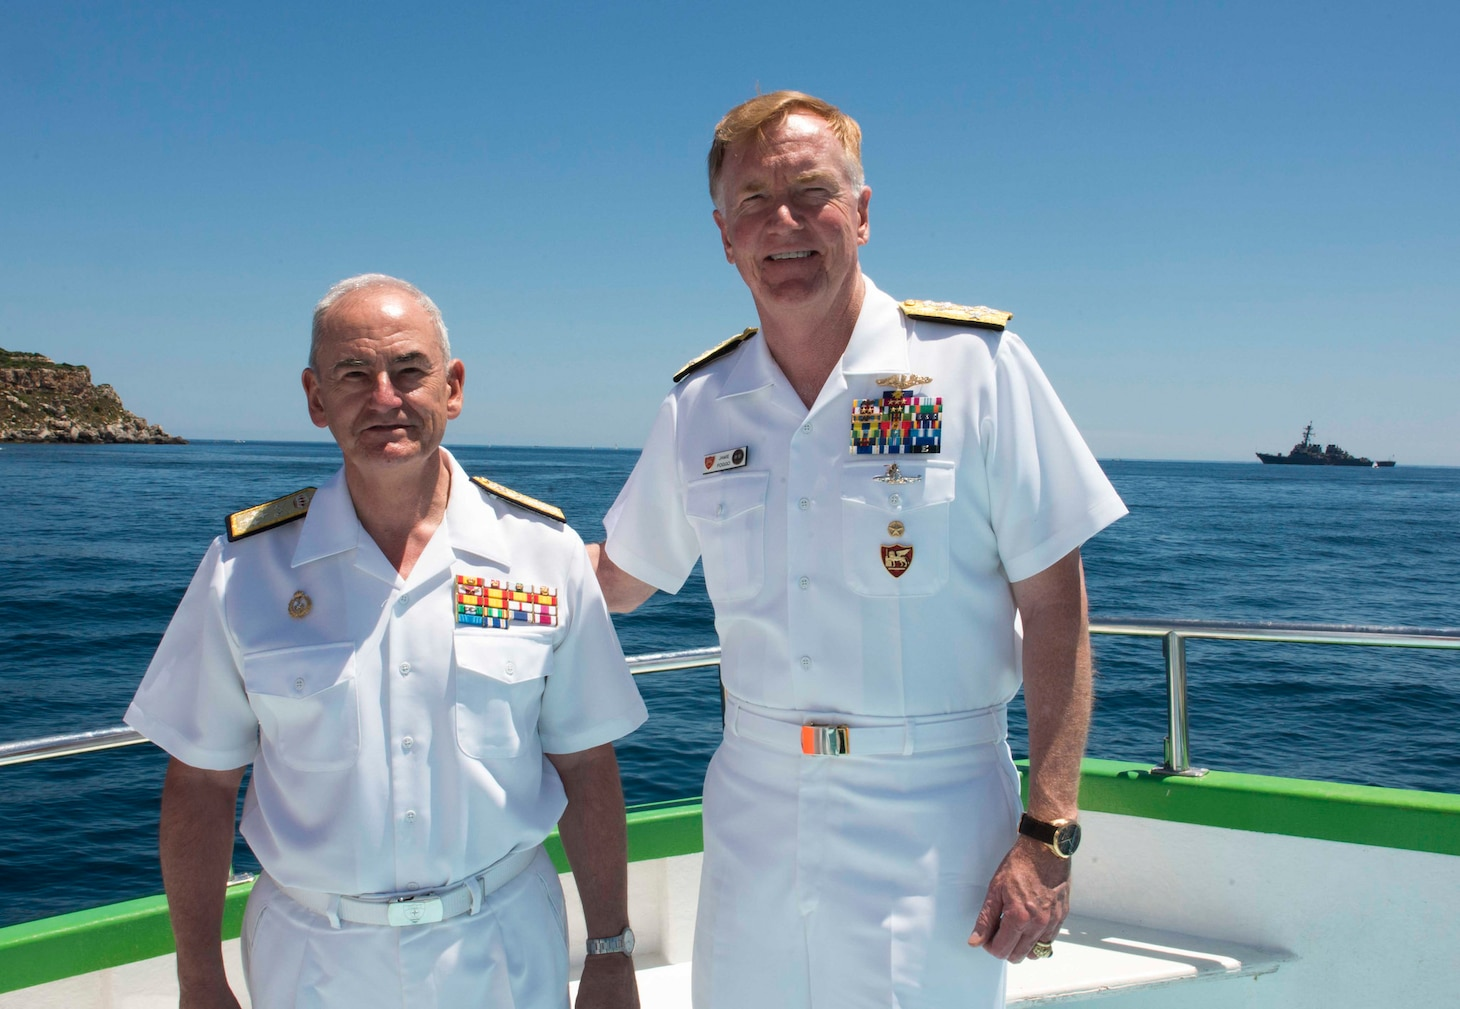 Adm. James G. Foggo III, commander, U.S. Naval Forces Europe-Africa and commander, Allied Joint Force Command Naples, Italy, right, and the Chief of Staff of the Spanish navy Adm. Gen. López Calderón pose for a photo with USS Donald Cook (DDG 75) in the background before a commemoration ceremony honoring the 150-year legacy of Adm. David Farragut in Minorca, Spain, June 16, 2018.